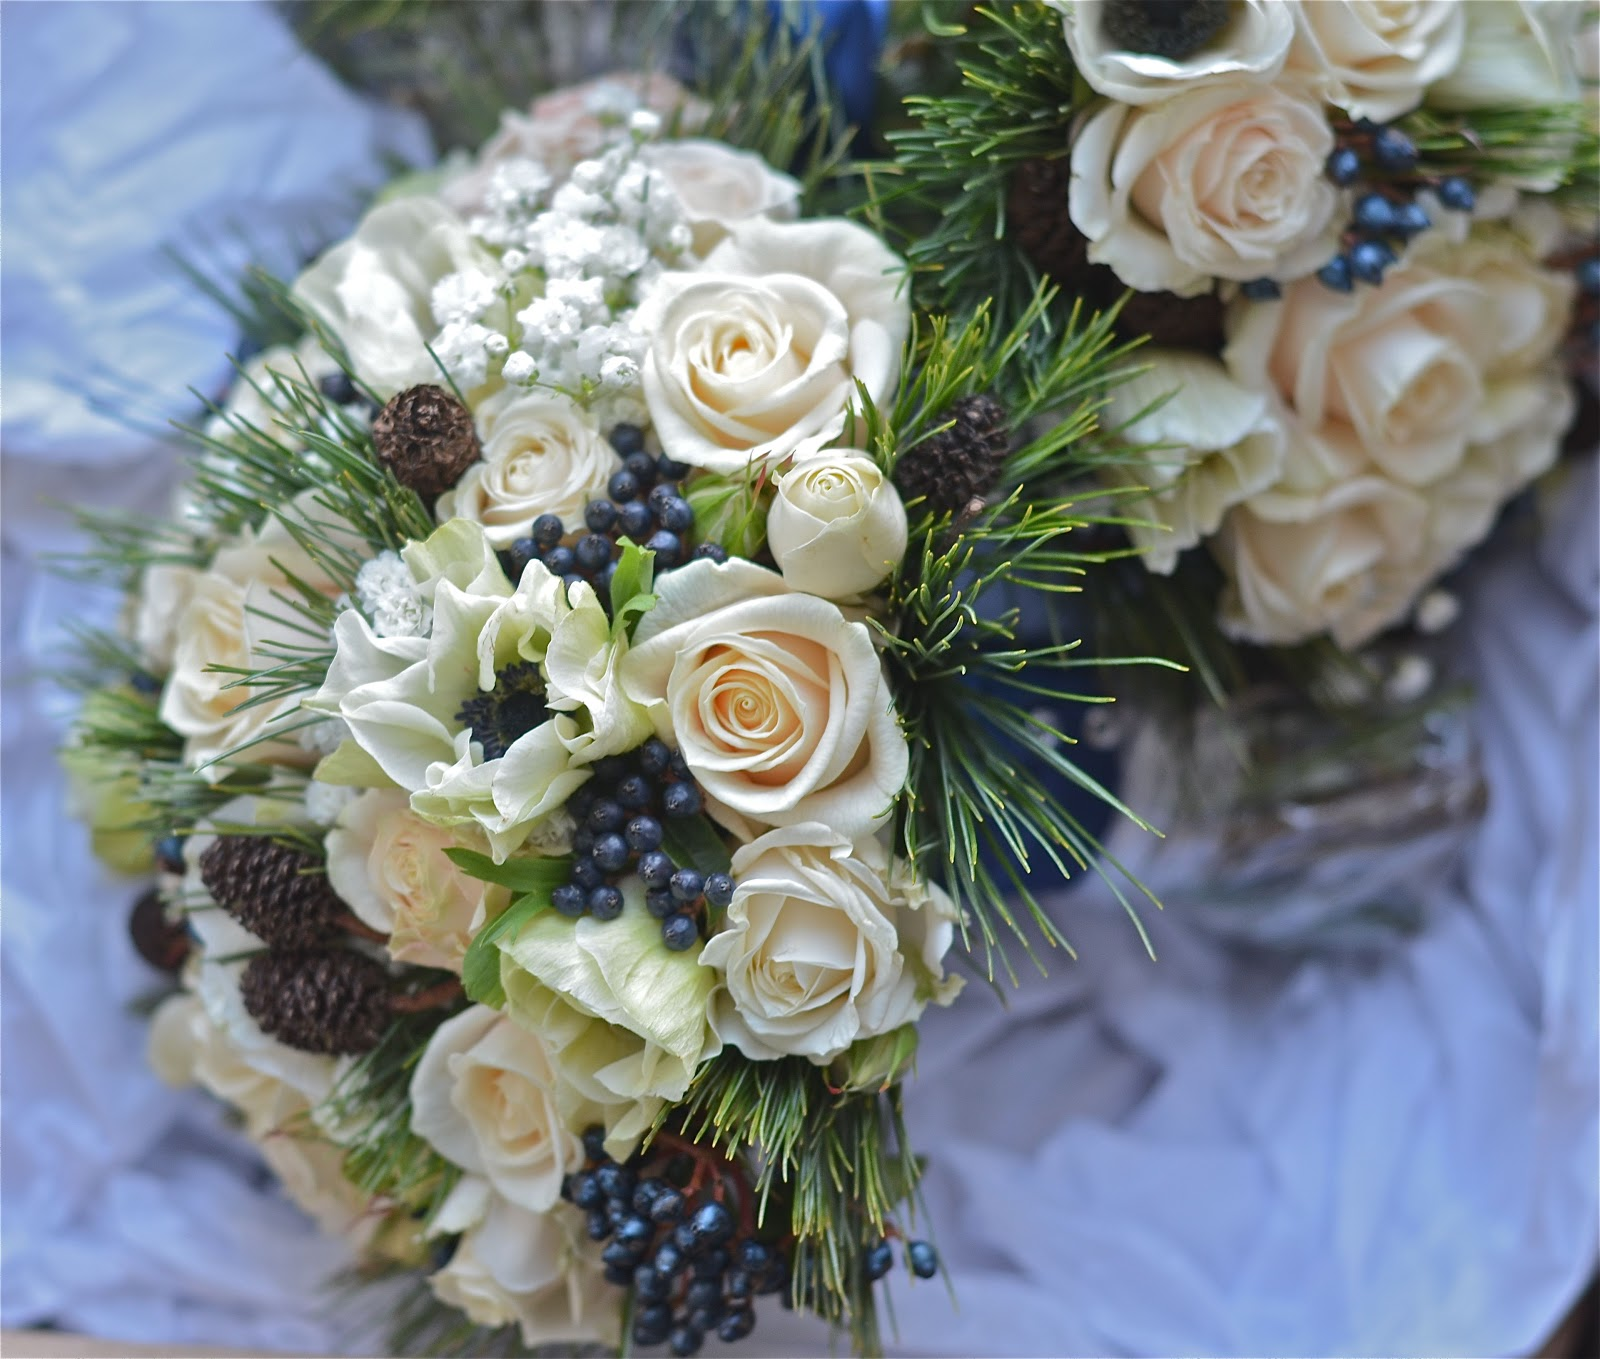 Wedding Flowers: Wedding Flowers Blog: Lucy's Winter Wedding Flowers